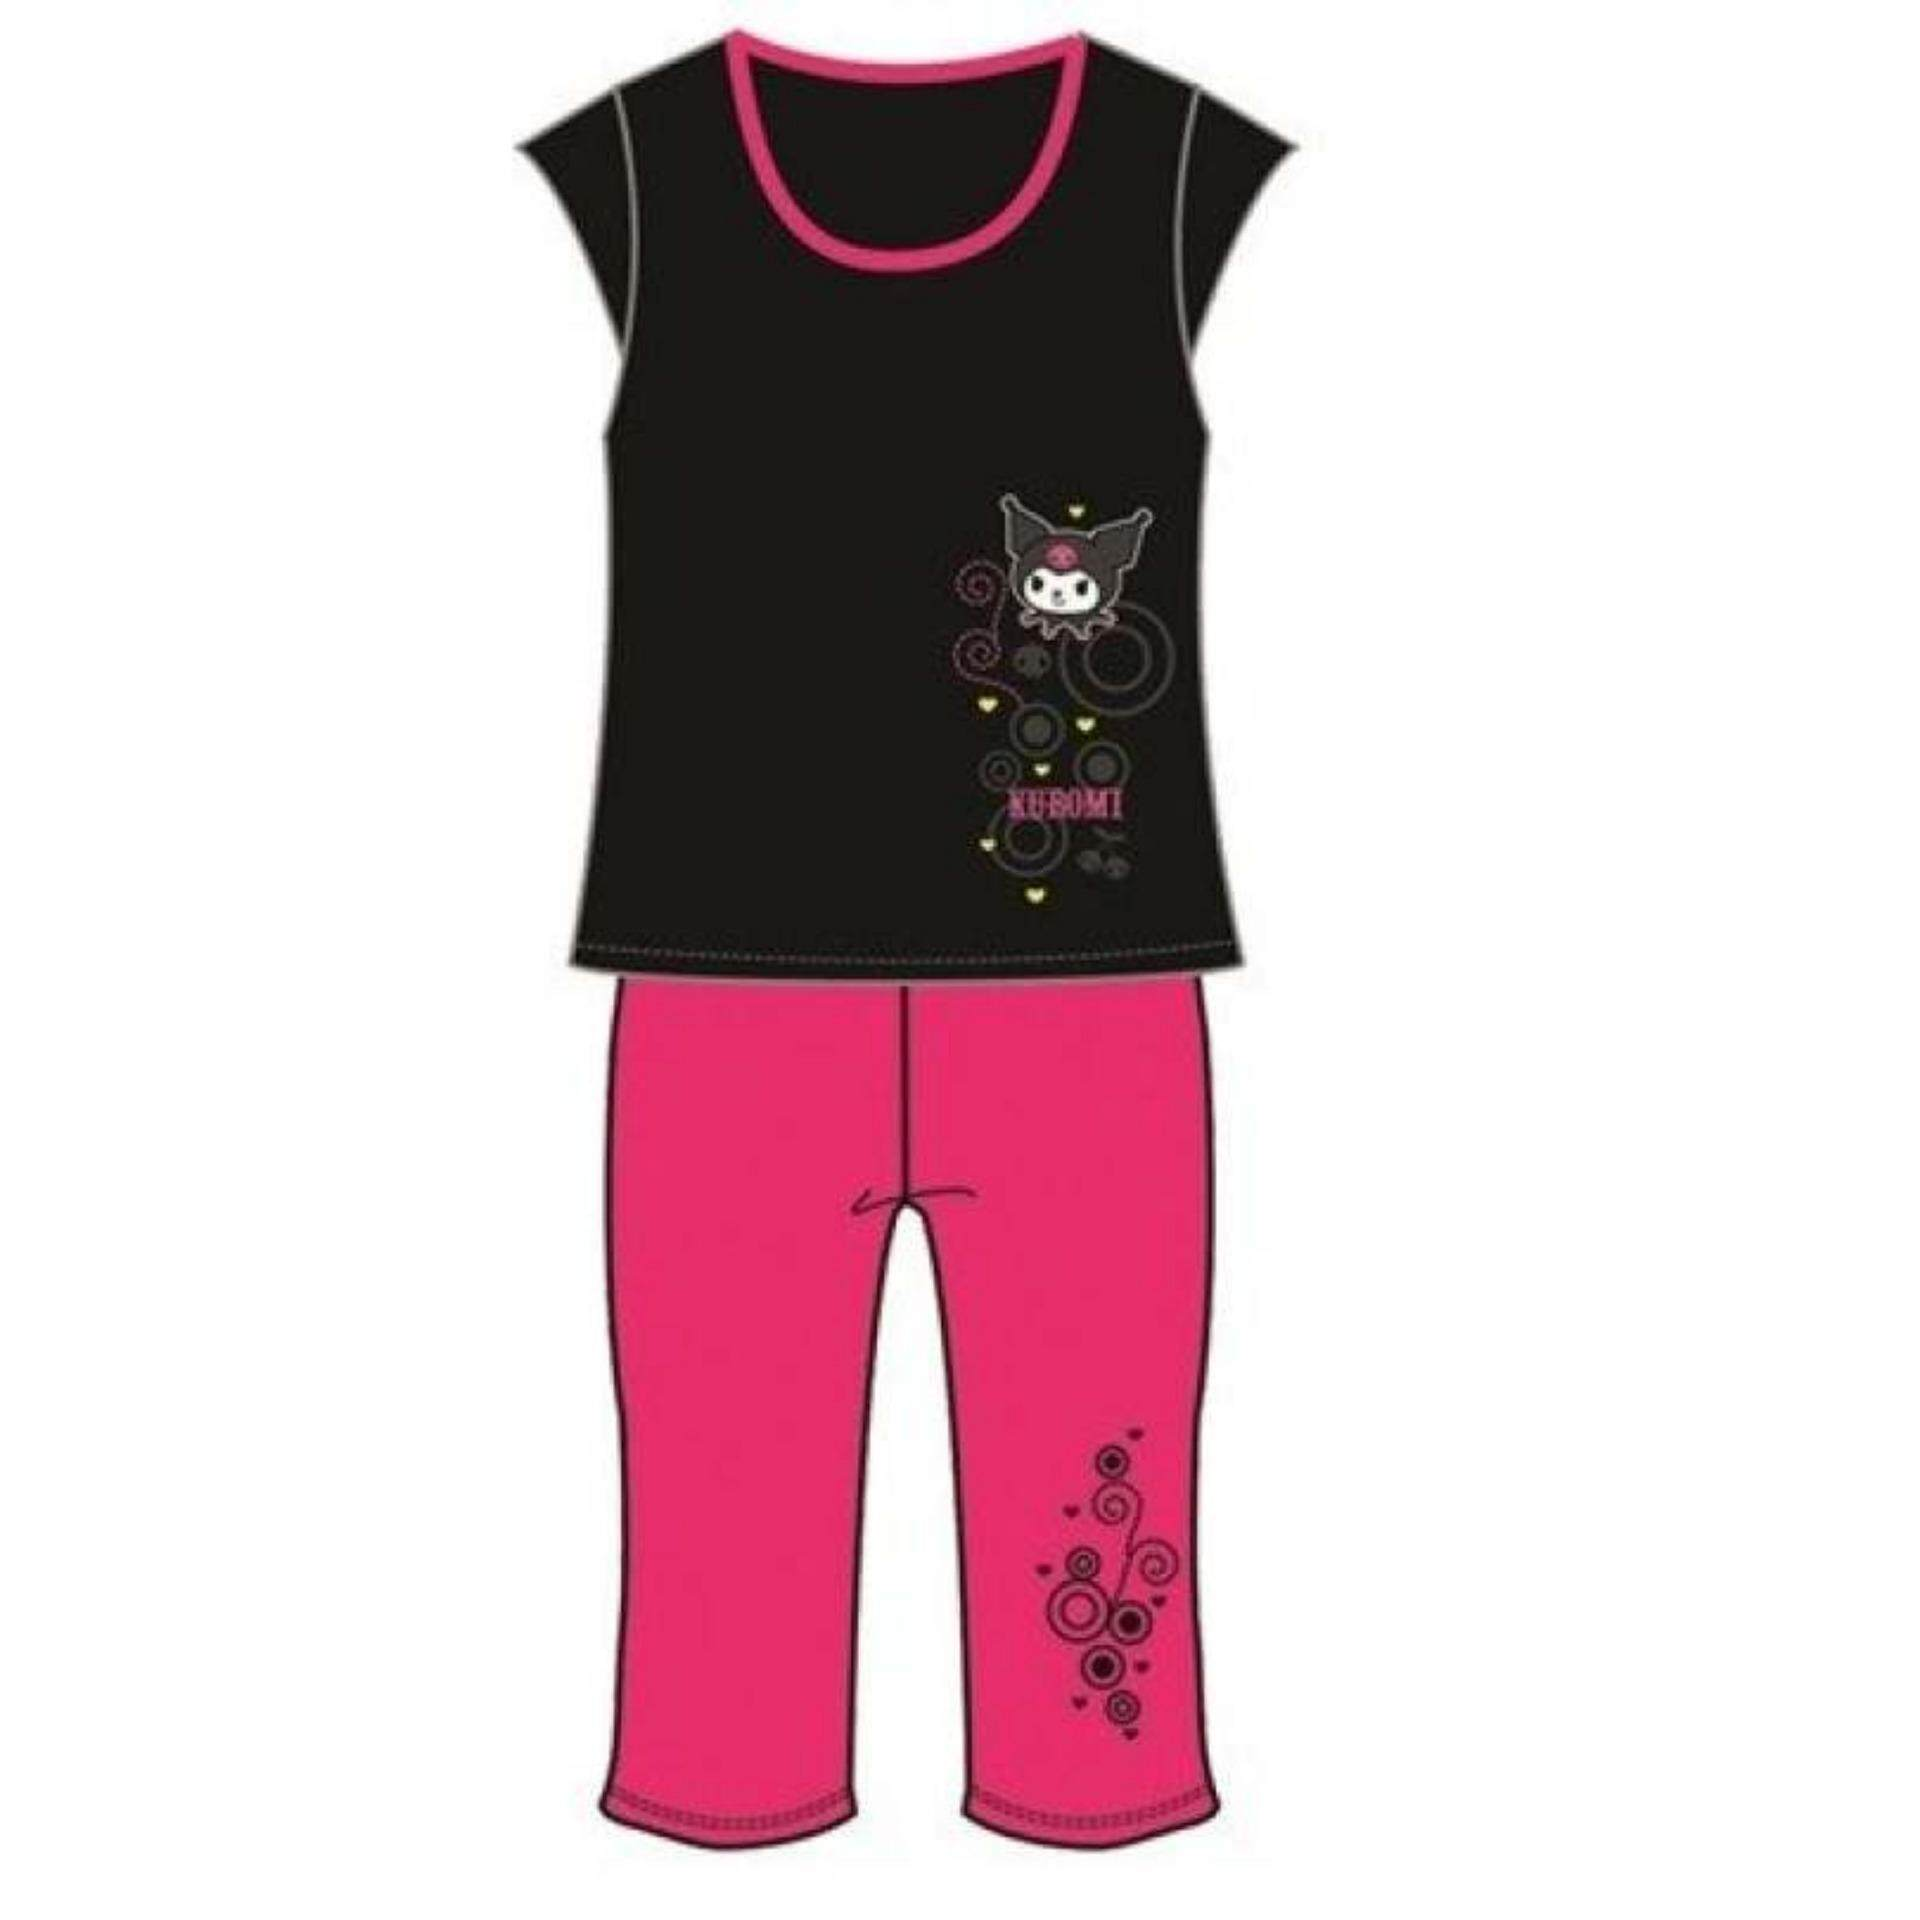 Hong Kong Limited Edition Sanrio Hello Kitty Ladies Lycra Material Yoga Suit M Size - Black Colour